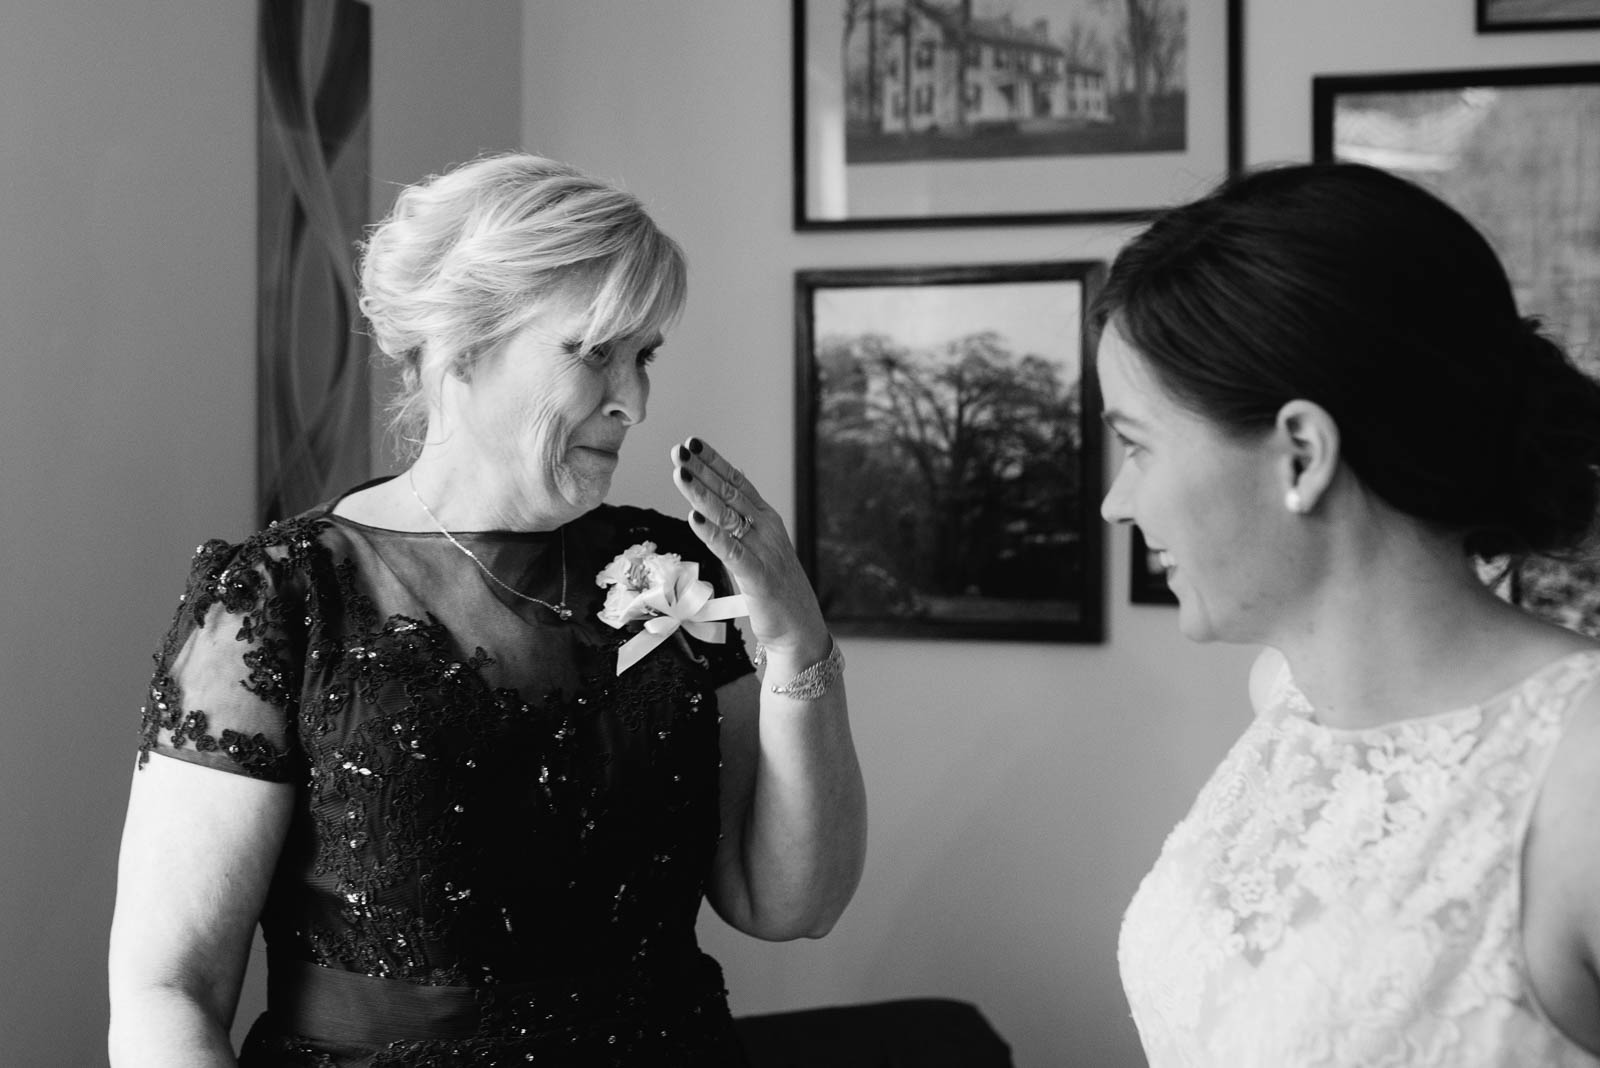 An emotional mom before her daughter's wedding